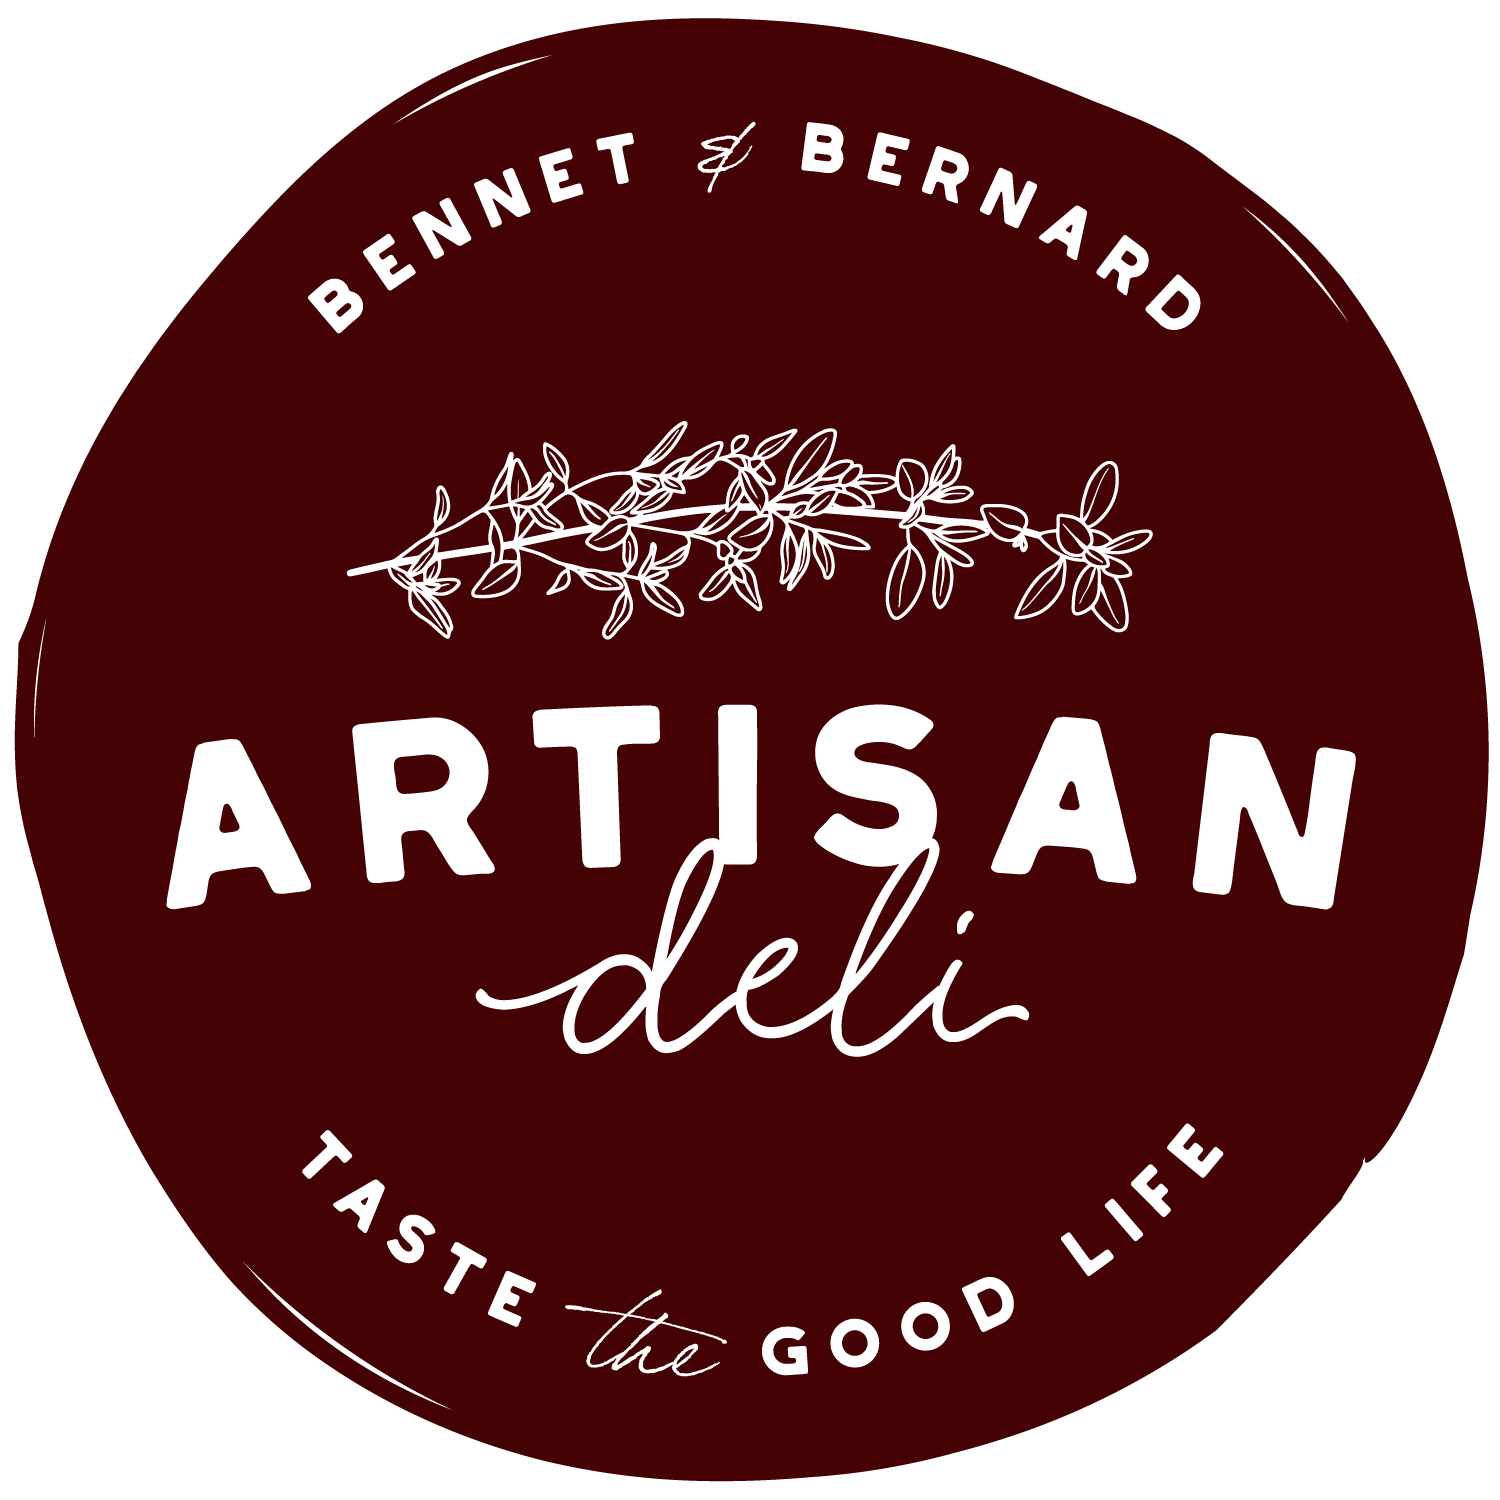 Artisan Deli – Premium Cold Cuts Meat by Bennet and Bernard